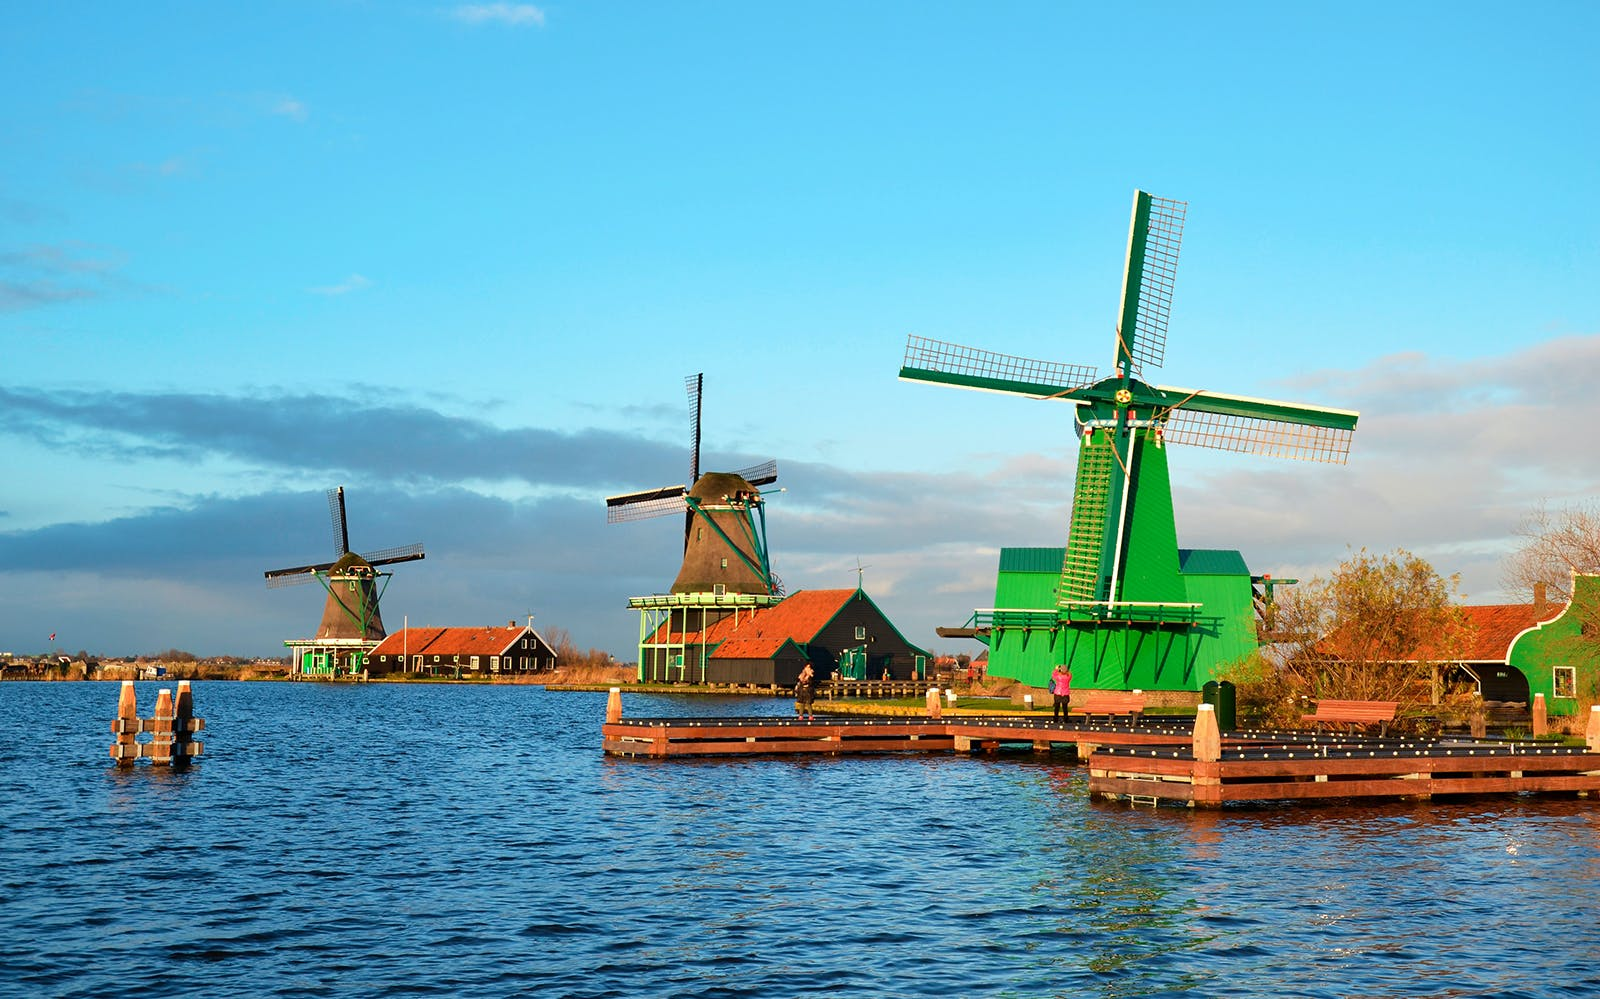 Half Day Trip to Zaanse Schans from Amsterdam